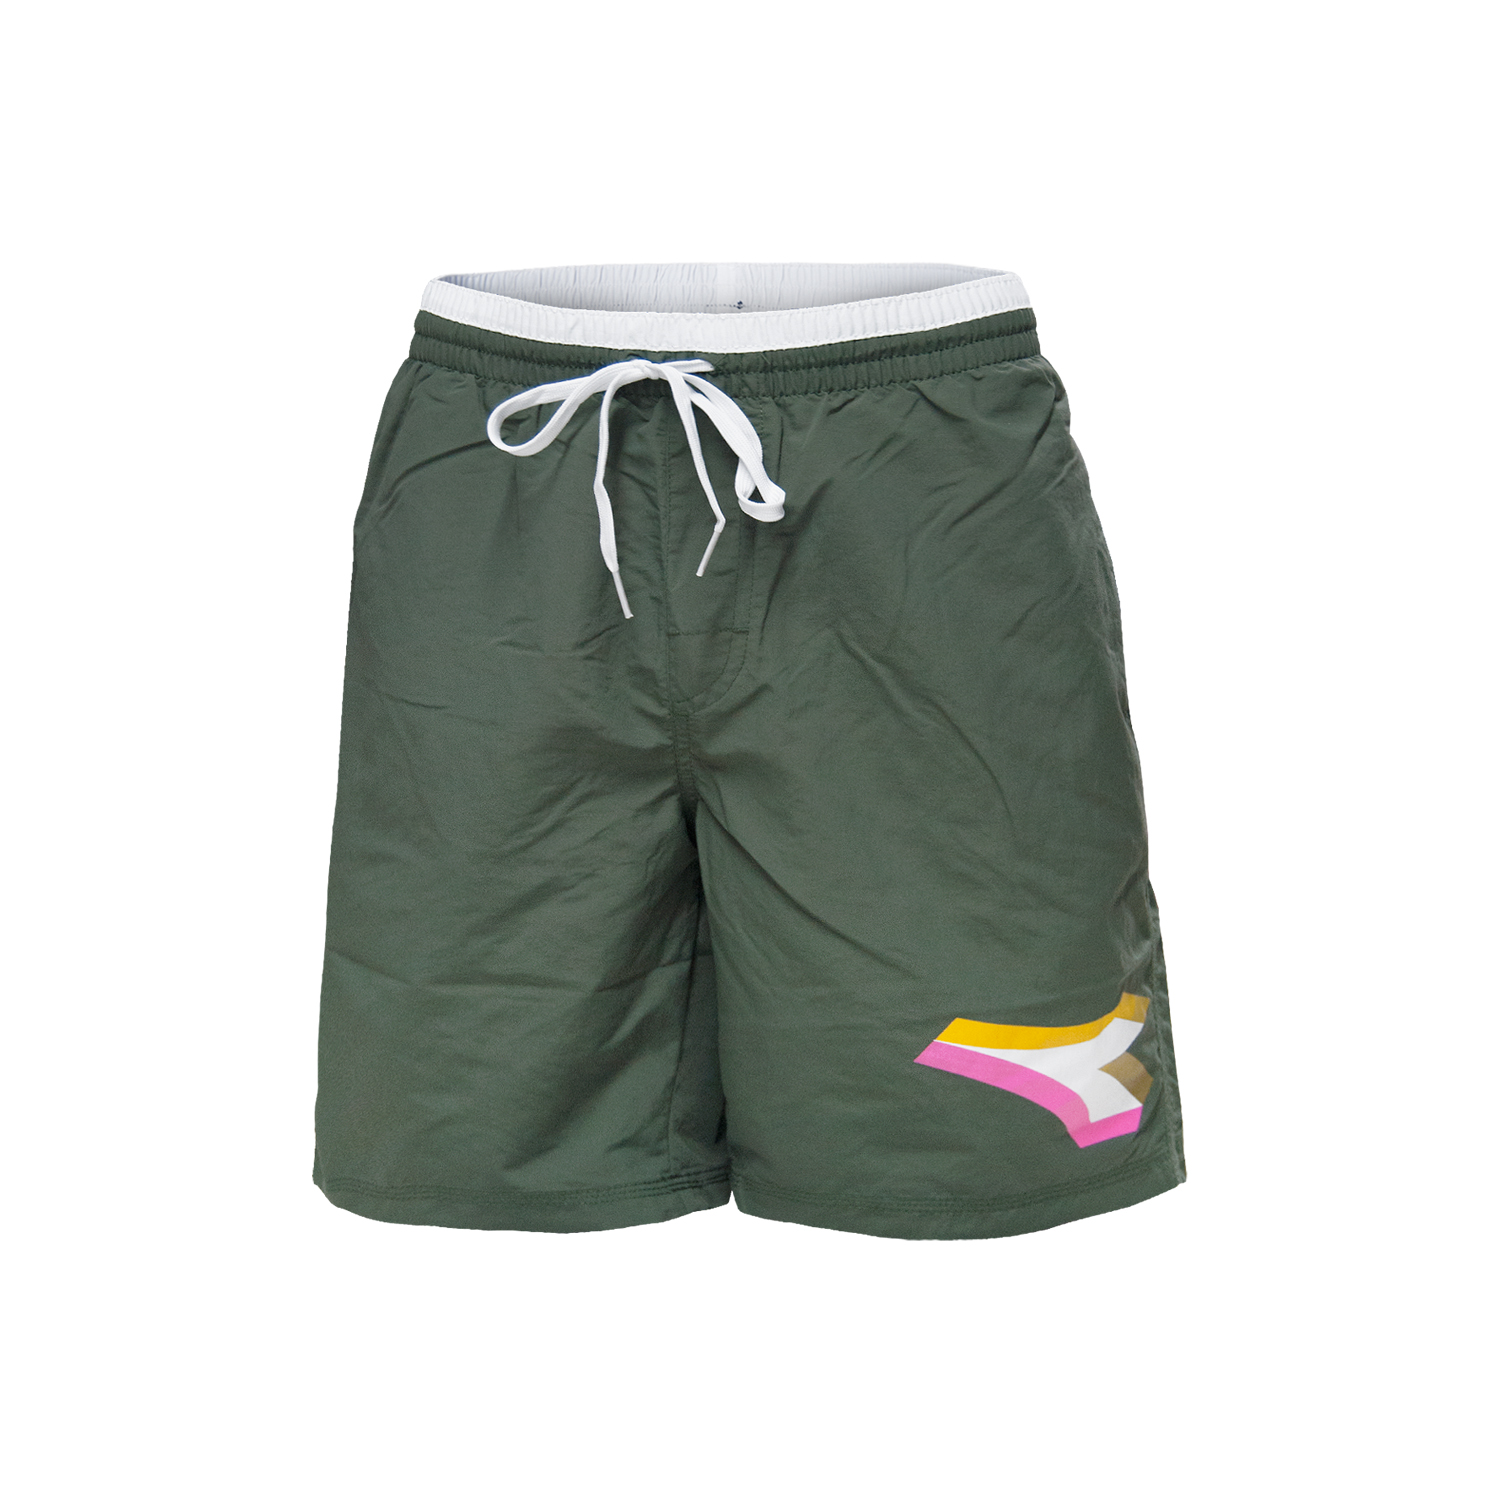 Costume-Mare-Uomo-DIADORA-Boxer-Swimshort-Colori-Assortiti-Art-634